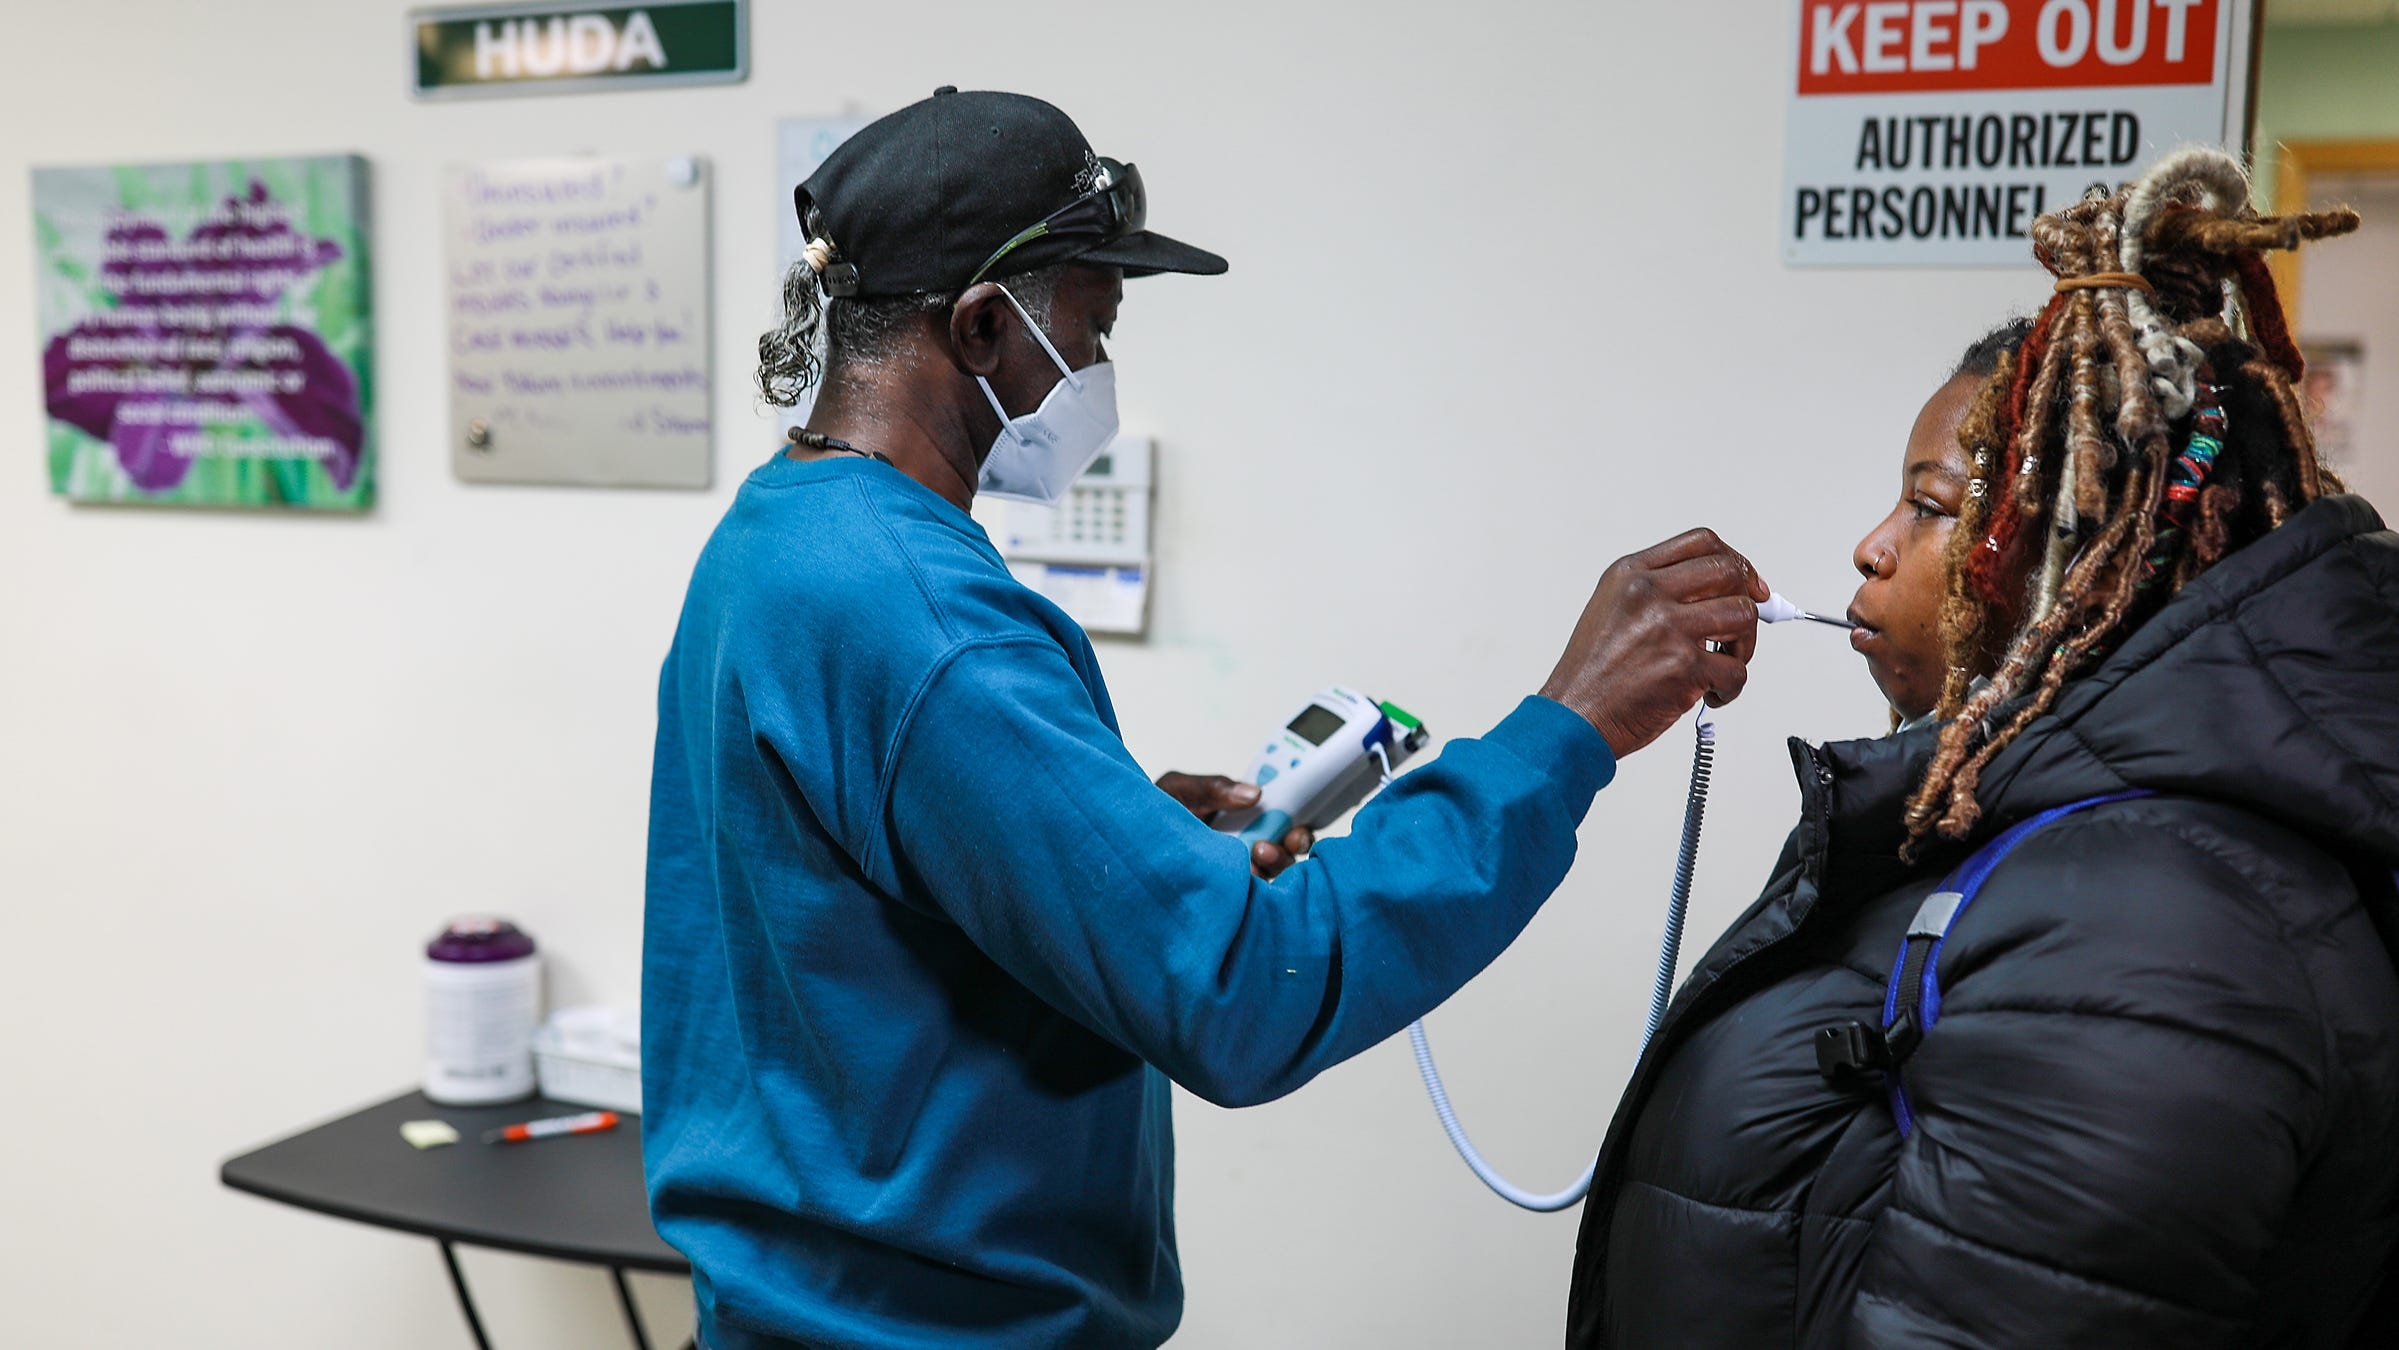 Building Manager Donald Ford, 67, of Detroit checks the temperature of Nikolette Barnes, 34, of Detroit after entering Health Unit on Davison Avenue (HUDA) free clinic in Detroit for COVID-19 precautions on Tuesday, Dec. 29, 2020.